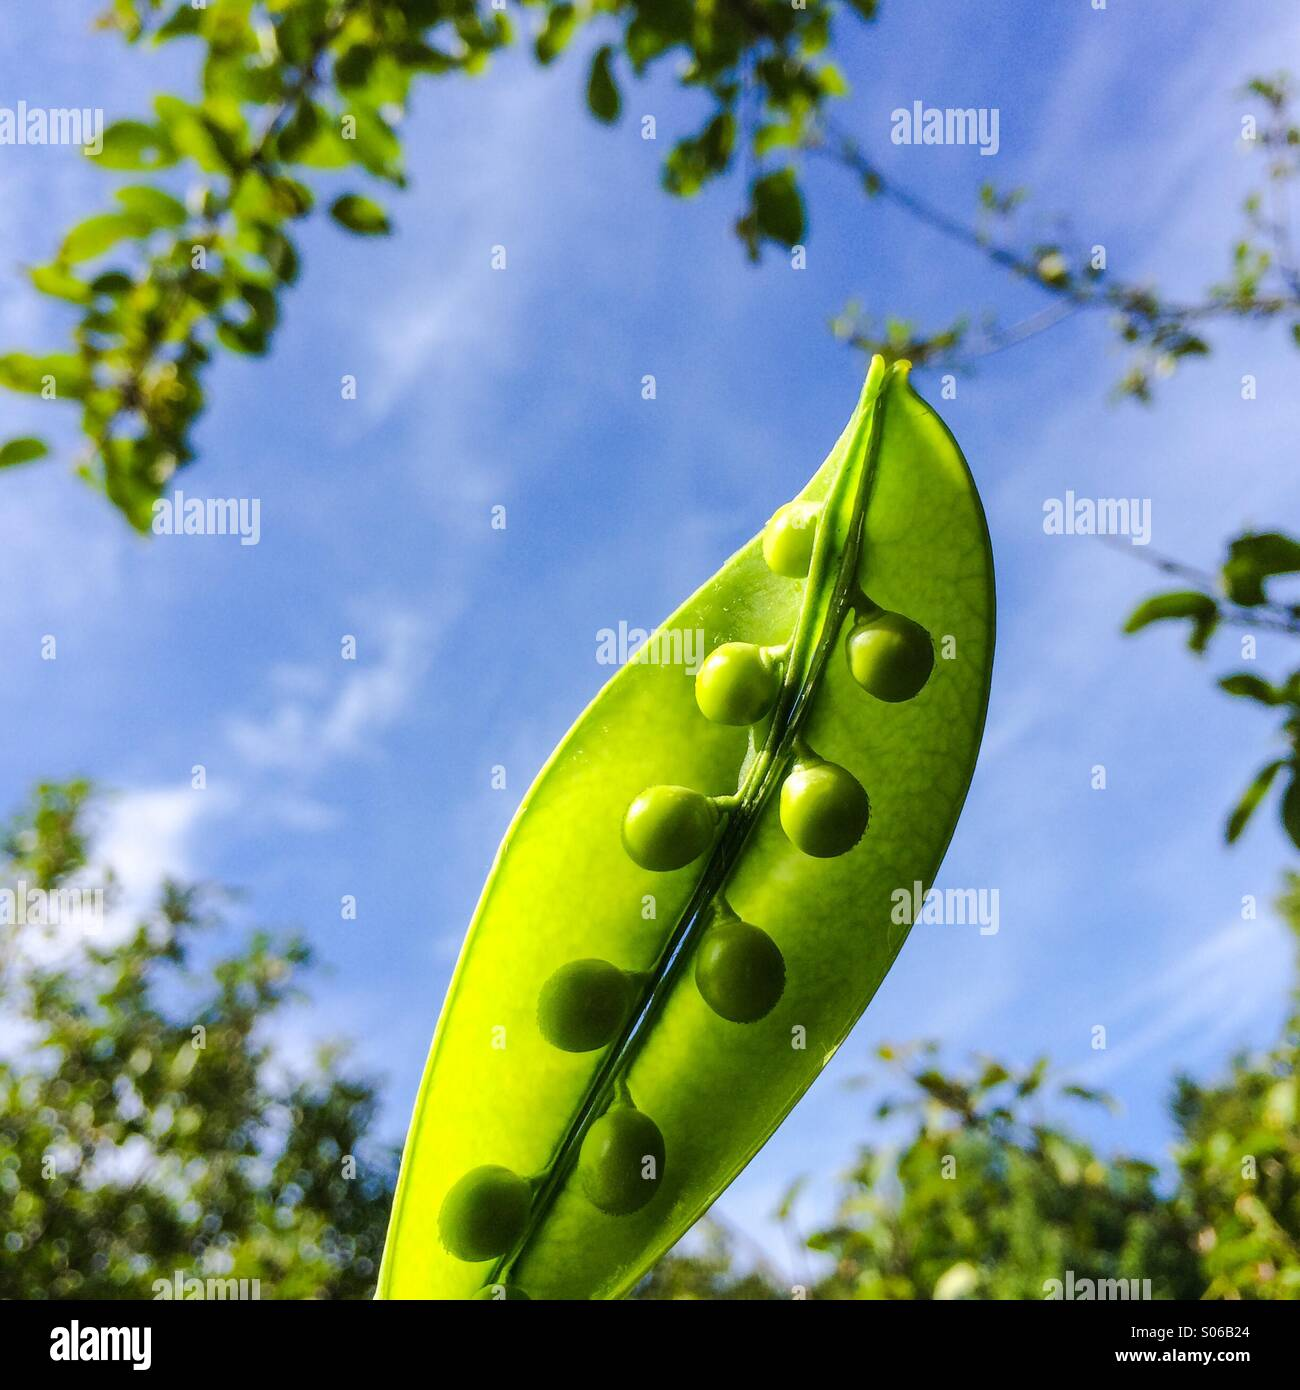 Pea pod opened to expose symmetry of peas. - Stock Image